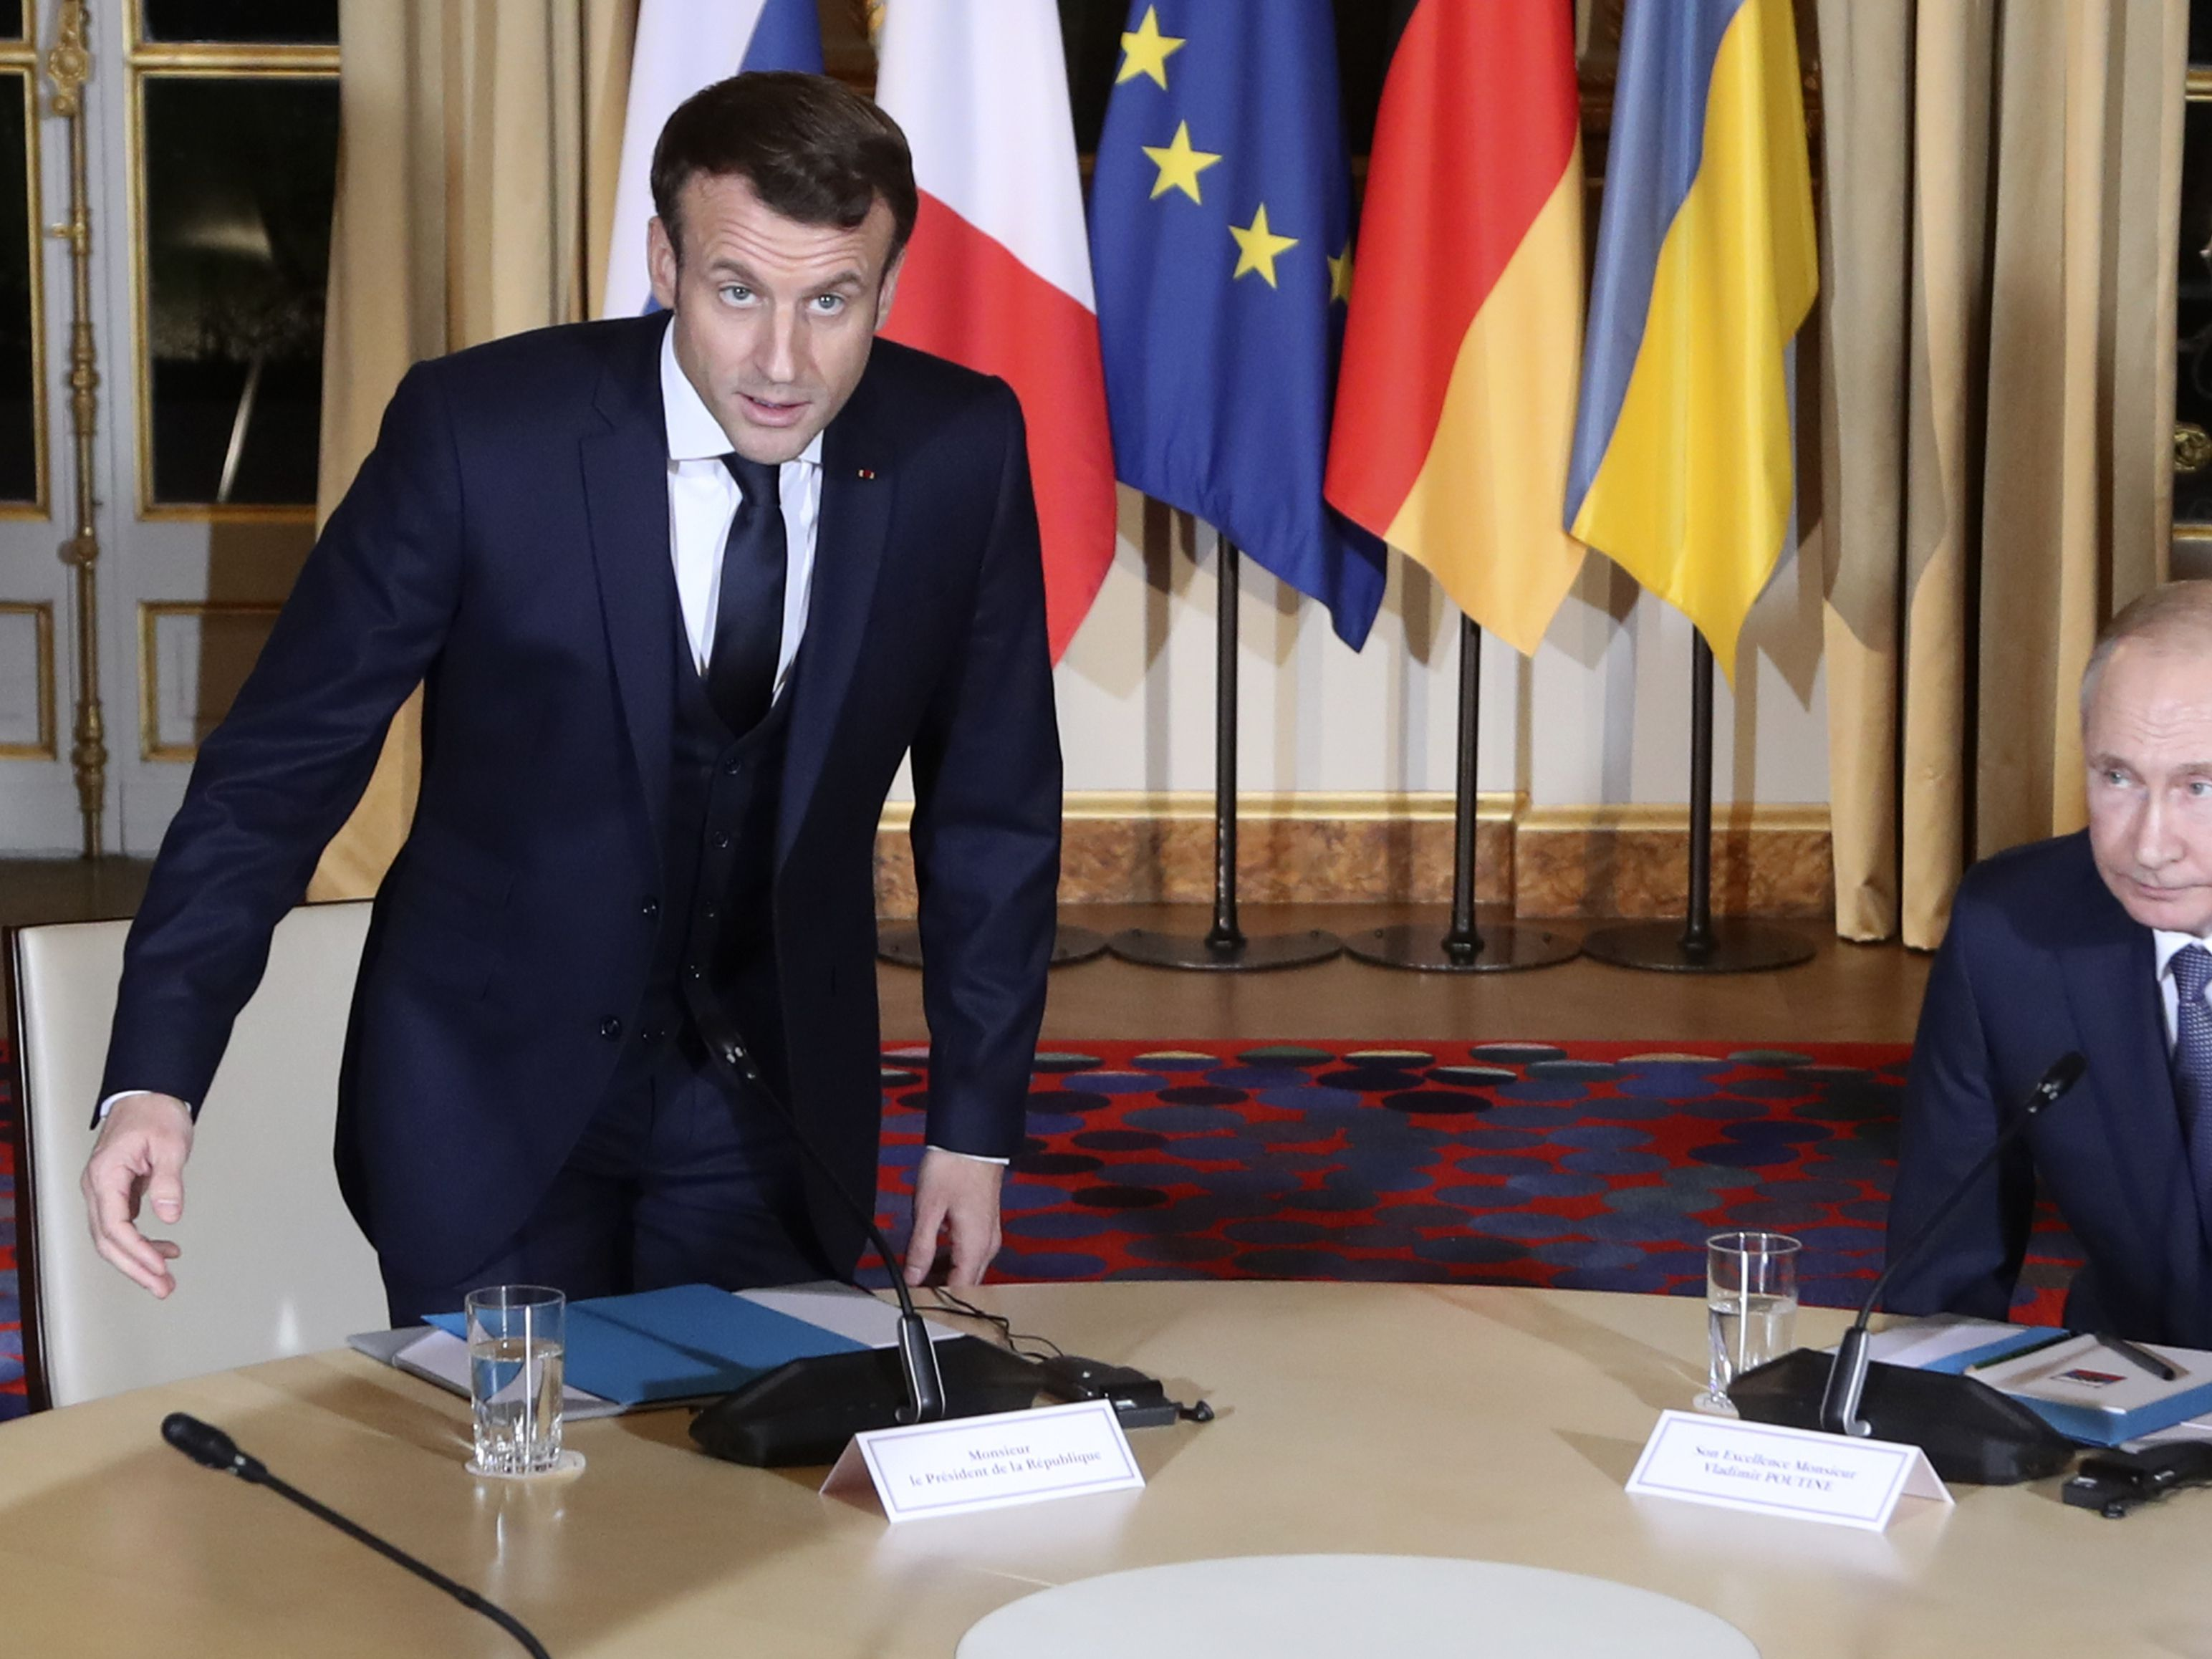 Putin, new Ukrainian leader Zelenskiy meet for first time